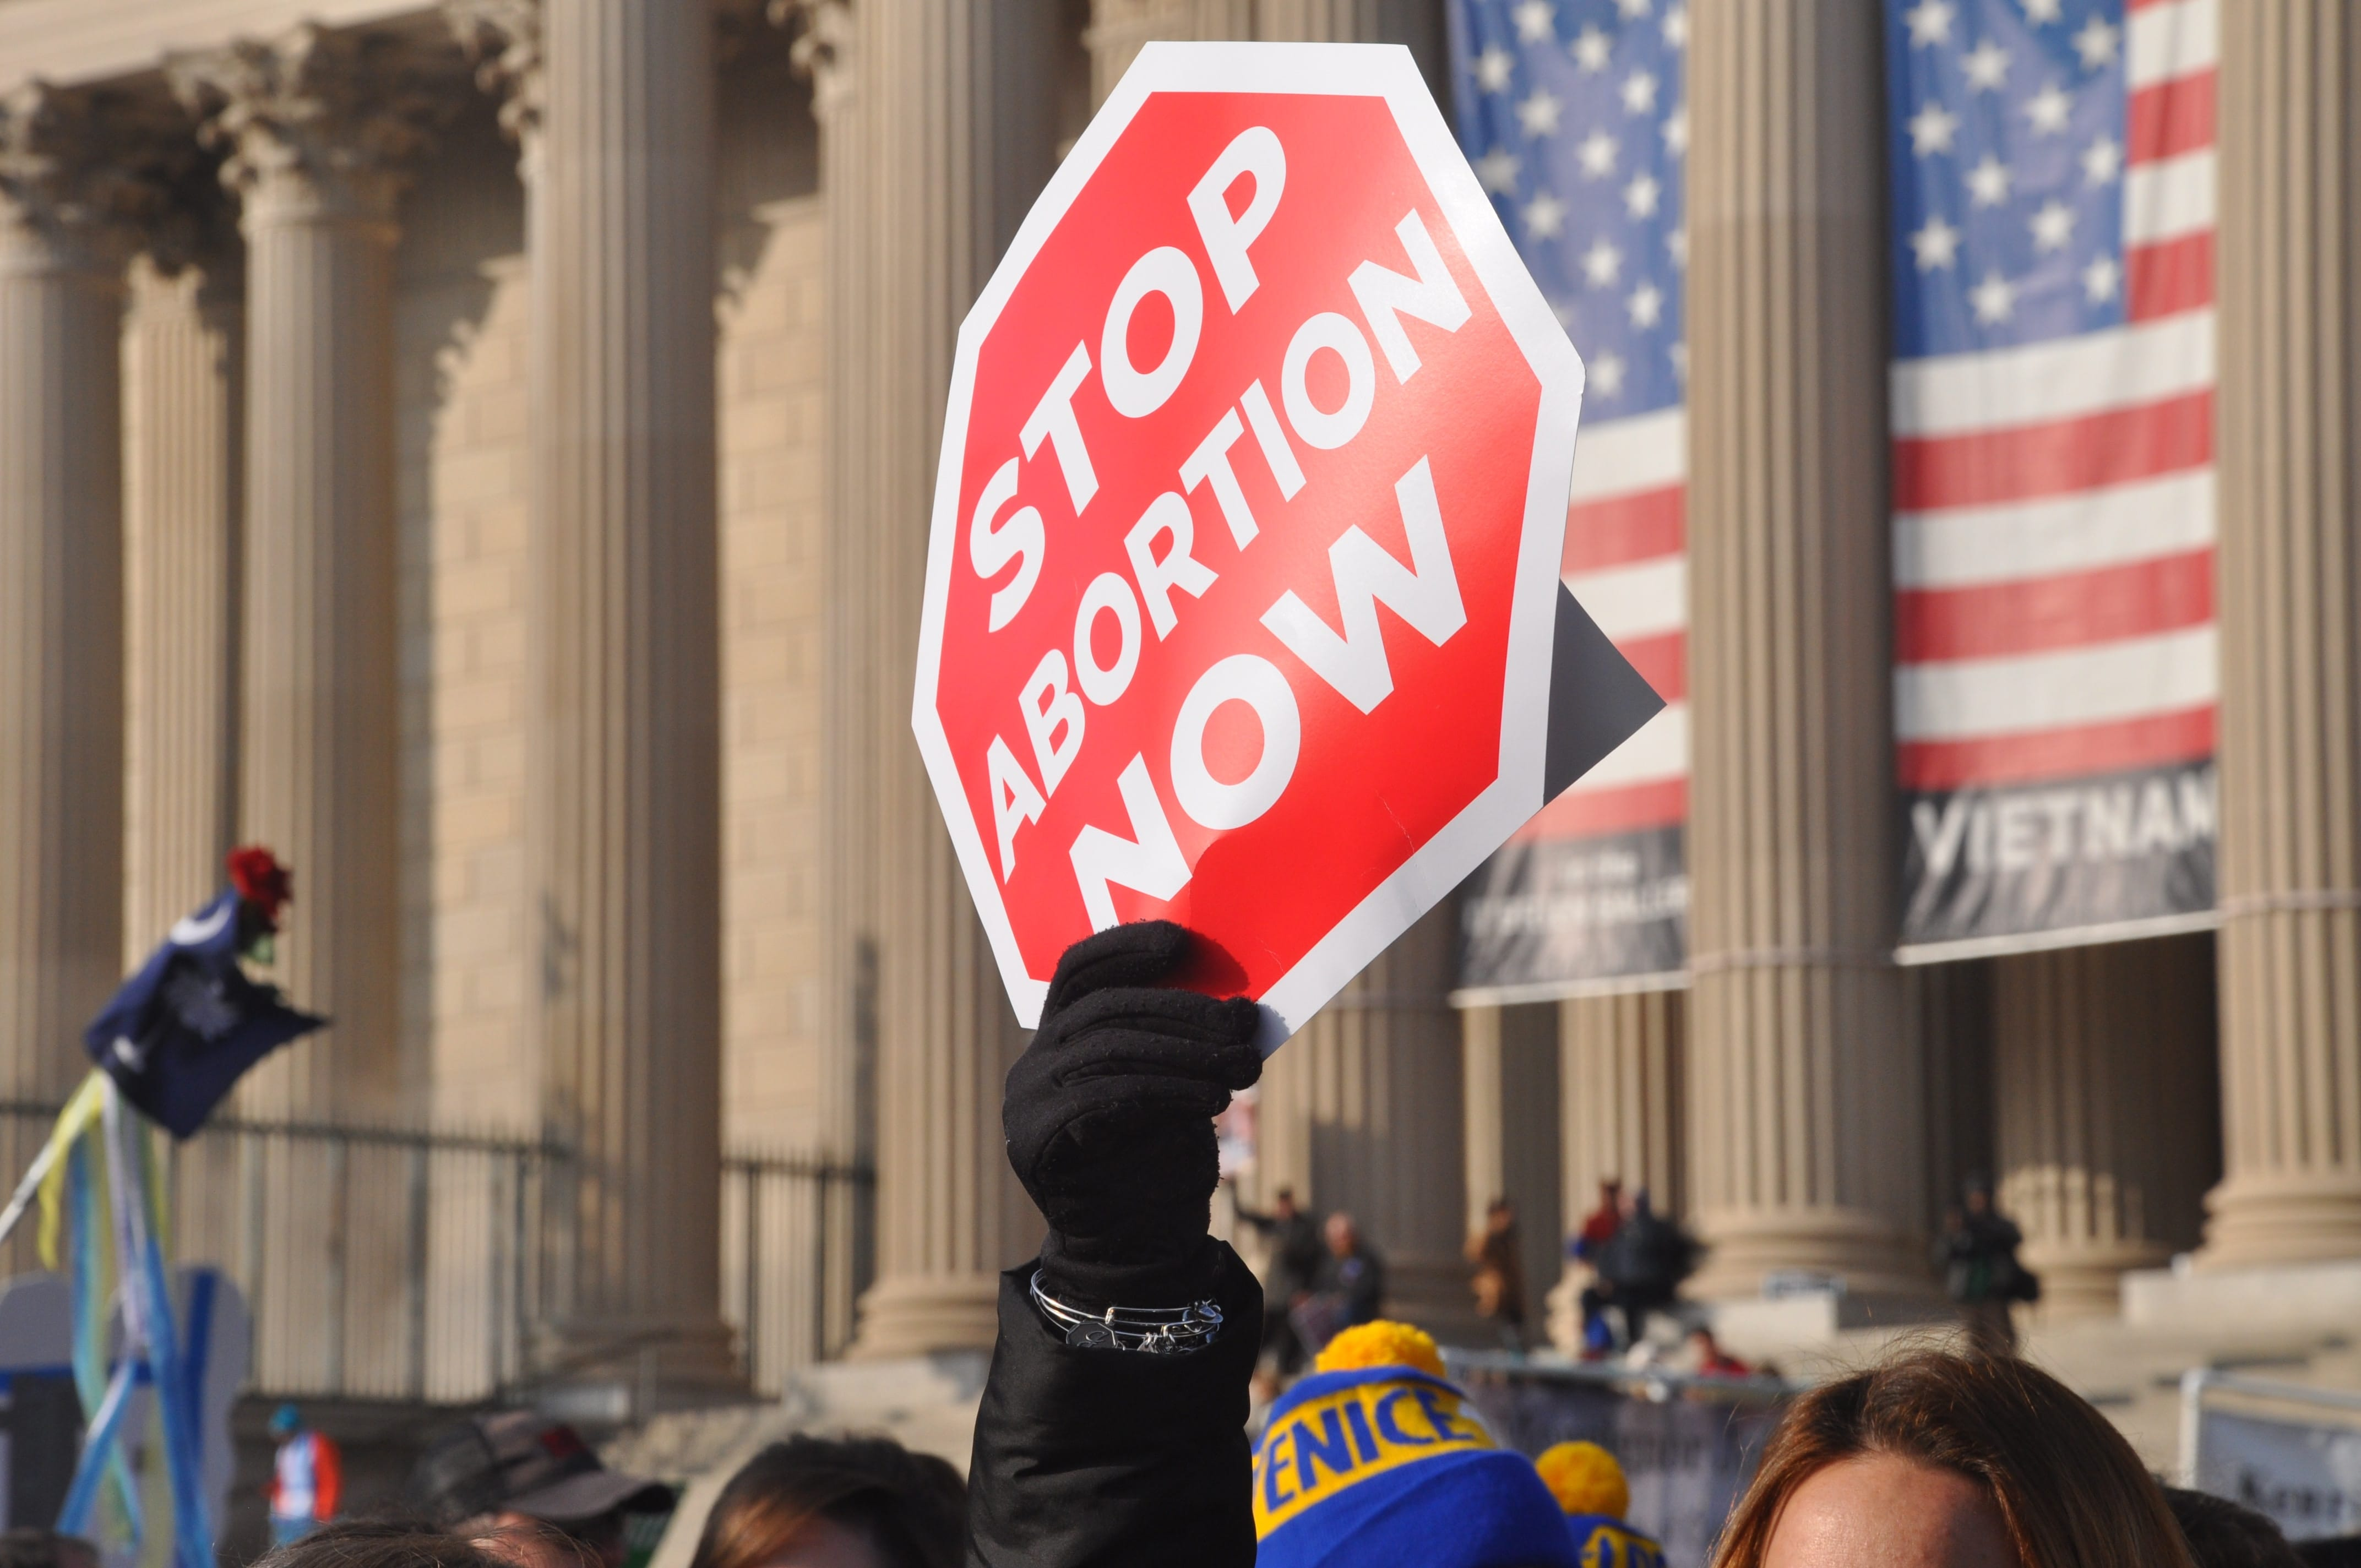 Missouri Judge Keeps Injunction in Place, Abortion Clinic Still Open